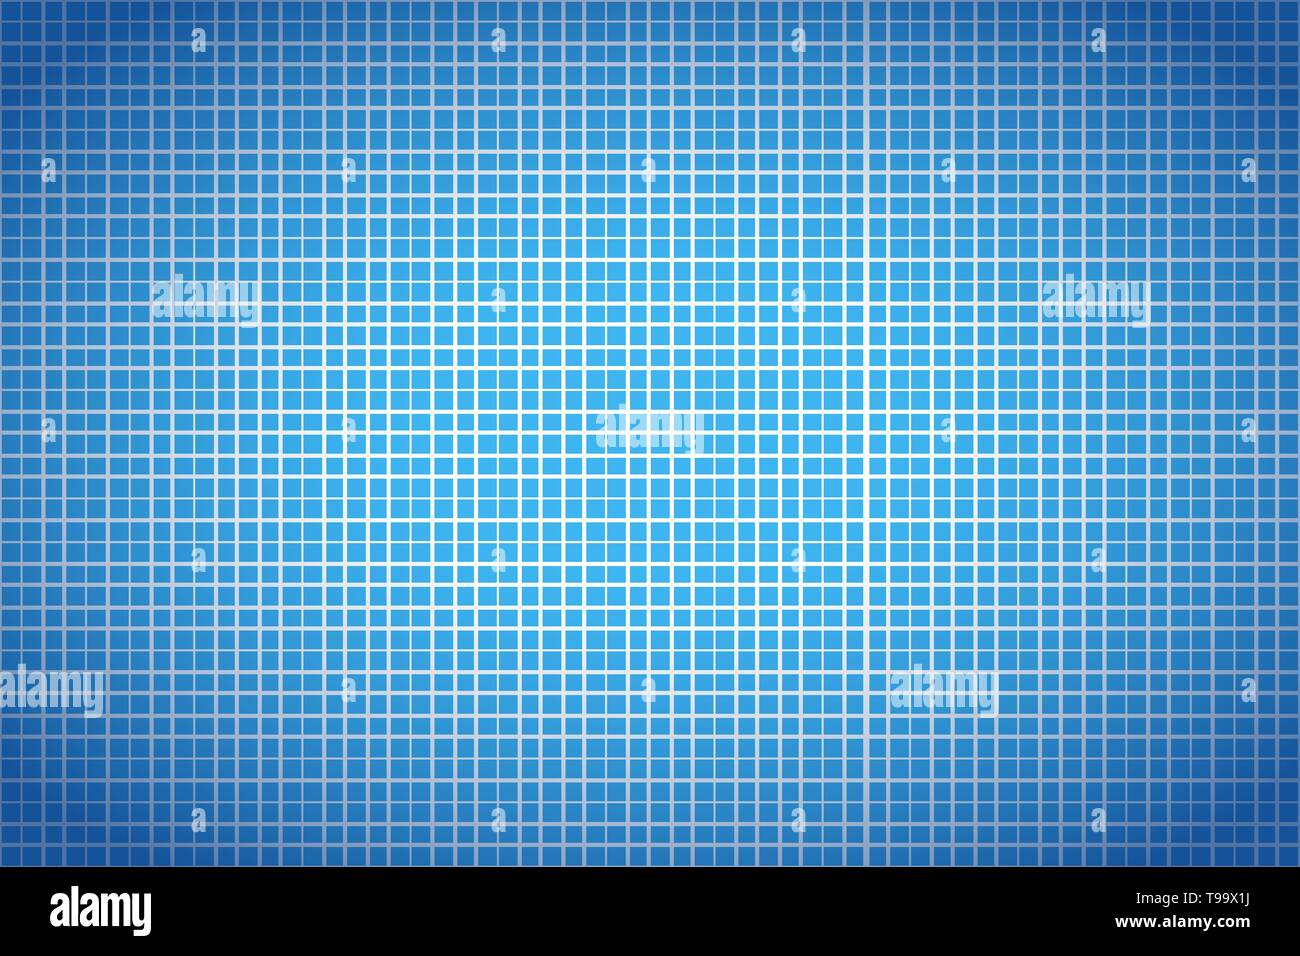 Blue and white graph paper, wide detailed math background - Stock Image